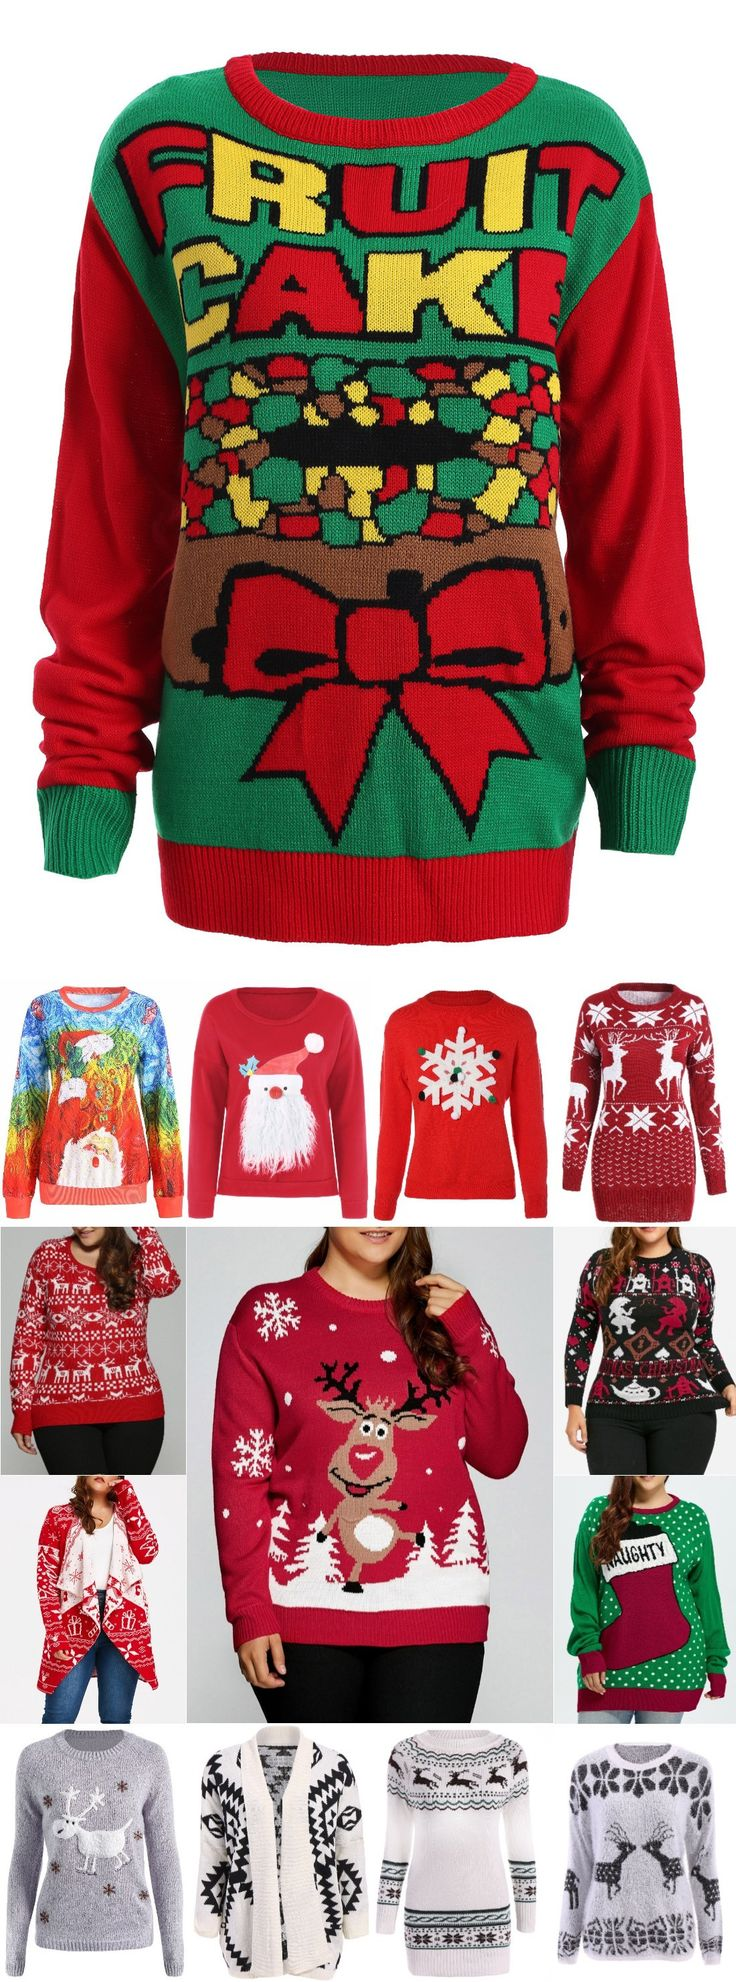 Adorably Funny Holiday Themed Pullovers for Boys and Girls Tipsy Elves Cute Kids Ugly Christmas Sweaters